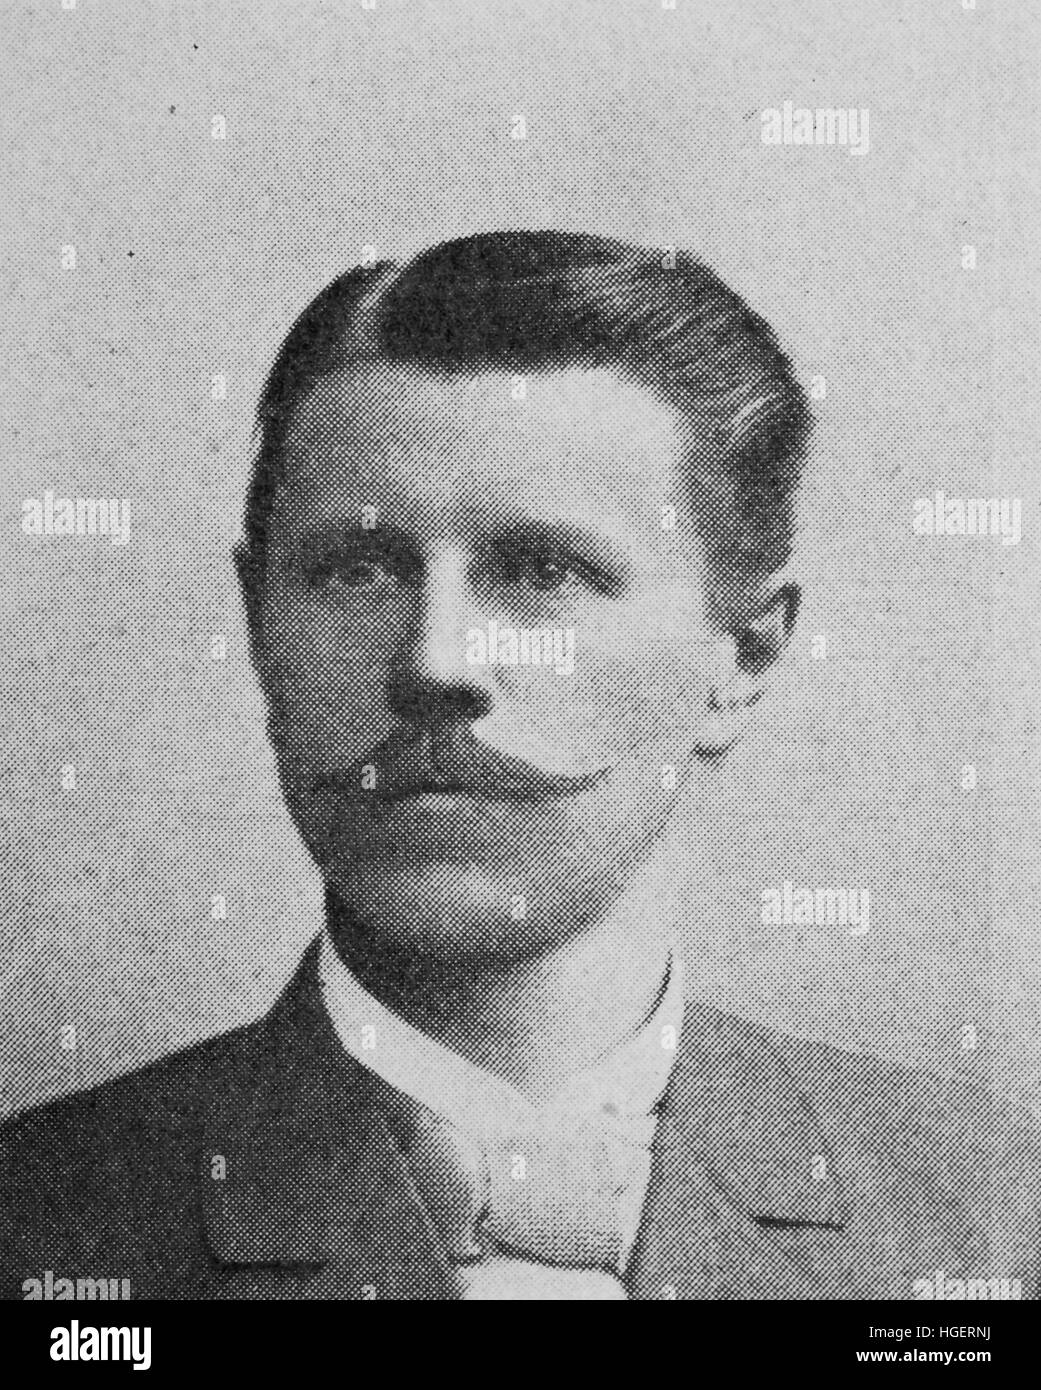 Carl Johann Emil Treptow, Born June 20, 1854; Died 20 November 1935, was a German mining scientist, reproduction - Stock Image